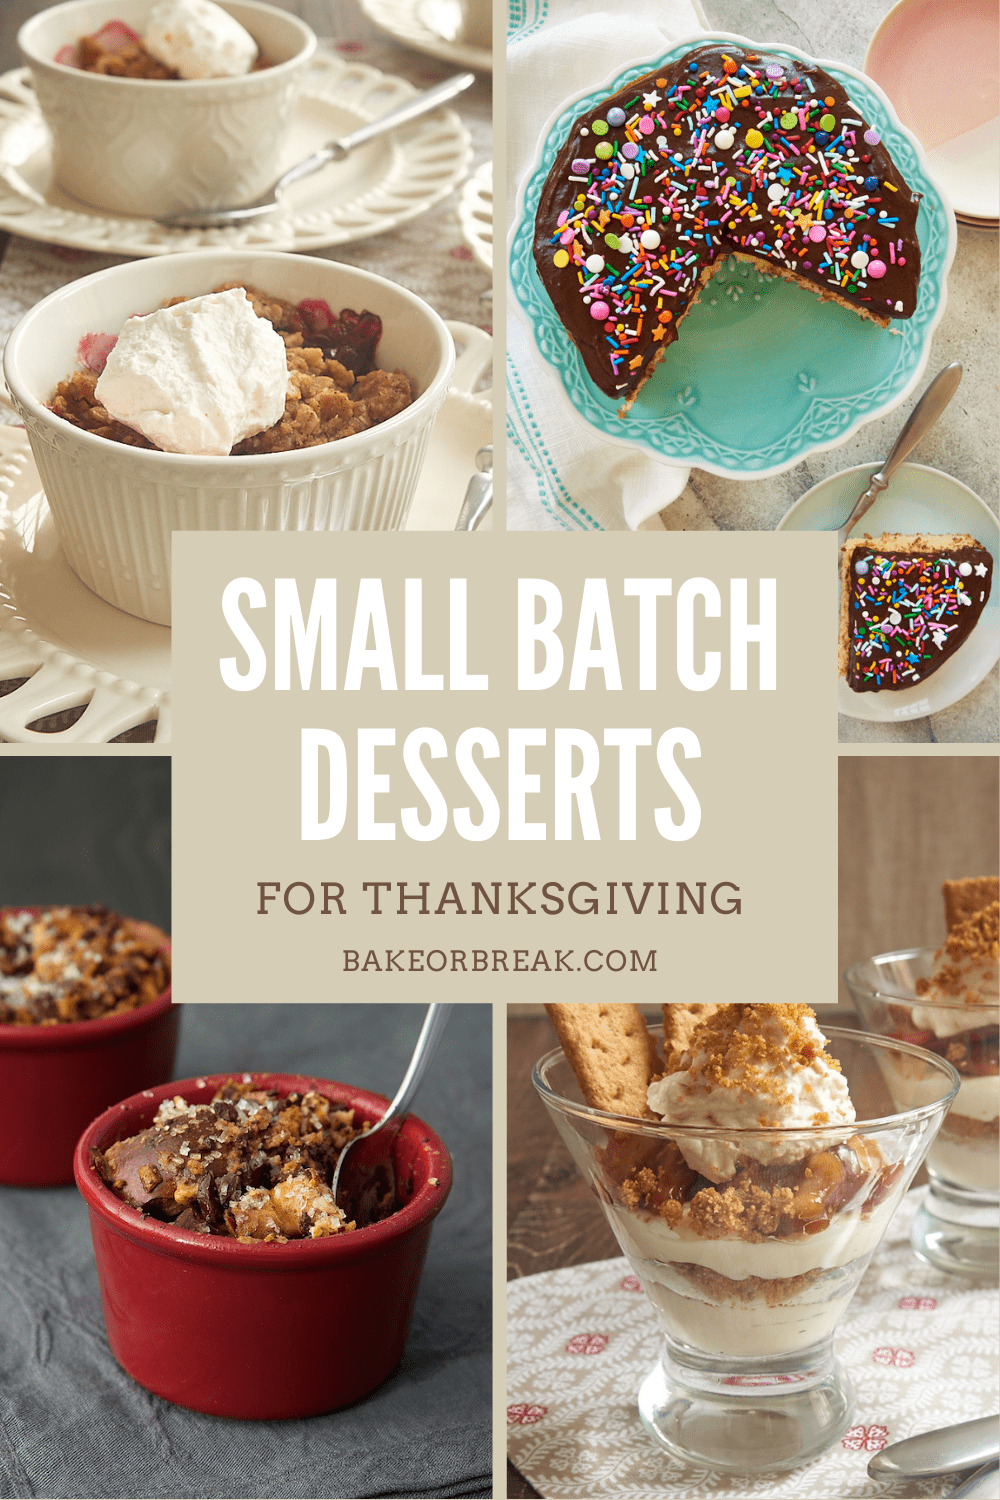 Small Batch Desserts for Thanksgiving bakeorbreak.com